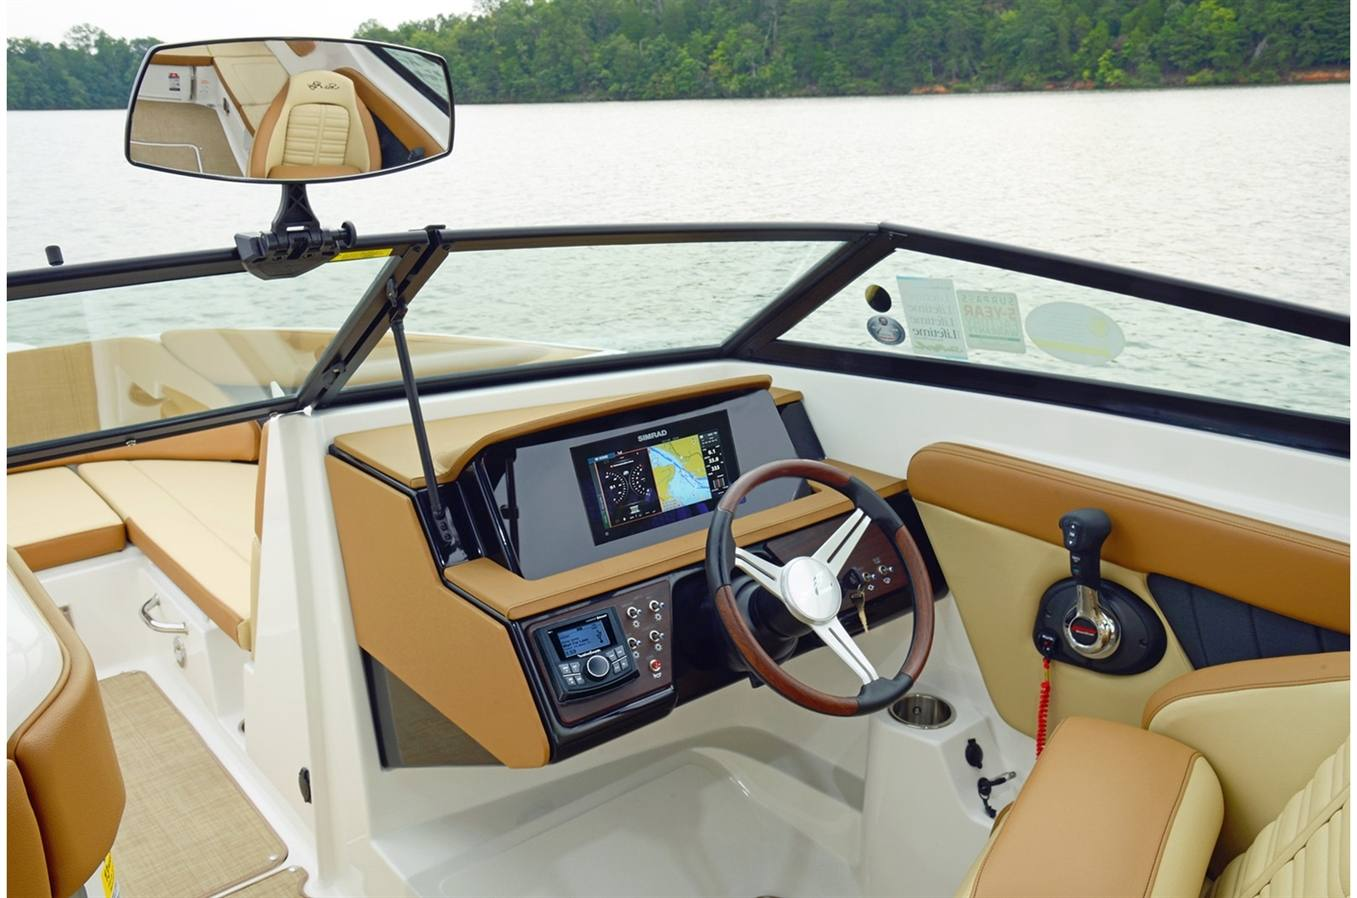 New 2018 Sea Ray SPX 230 - Hutchinson's Boat Works